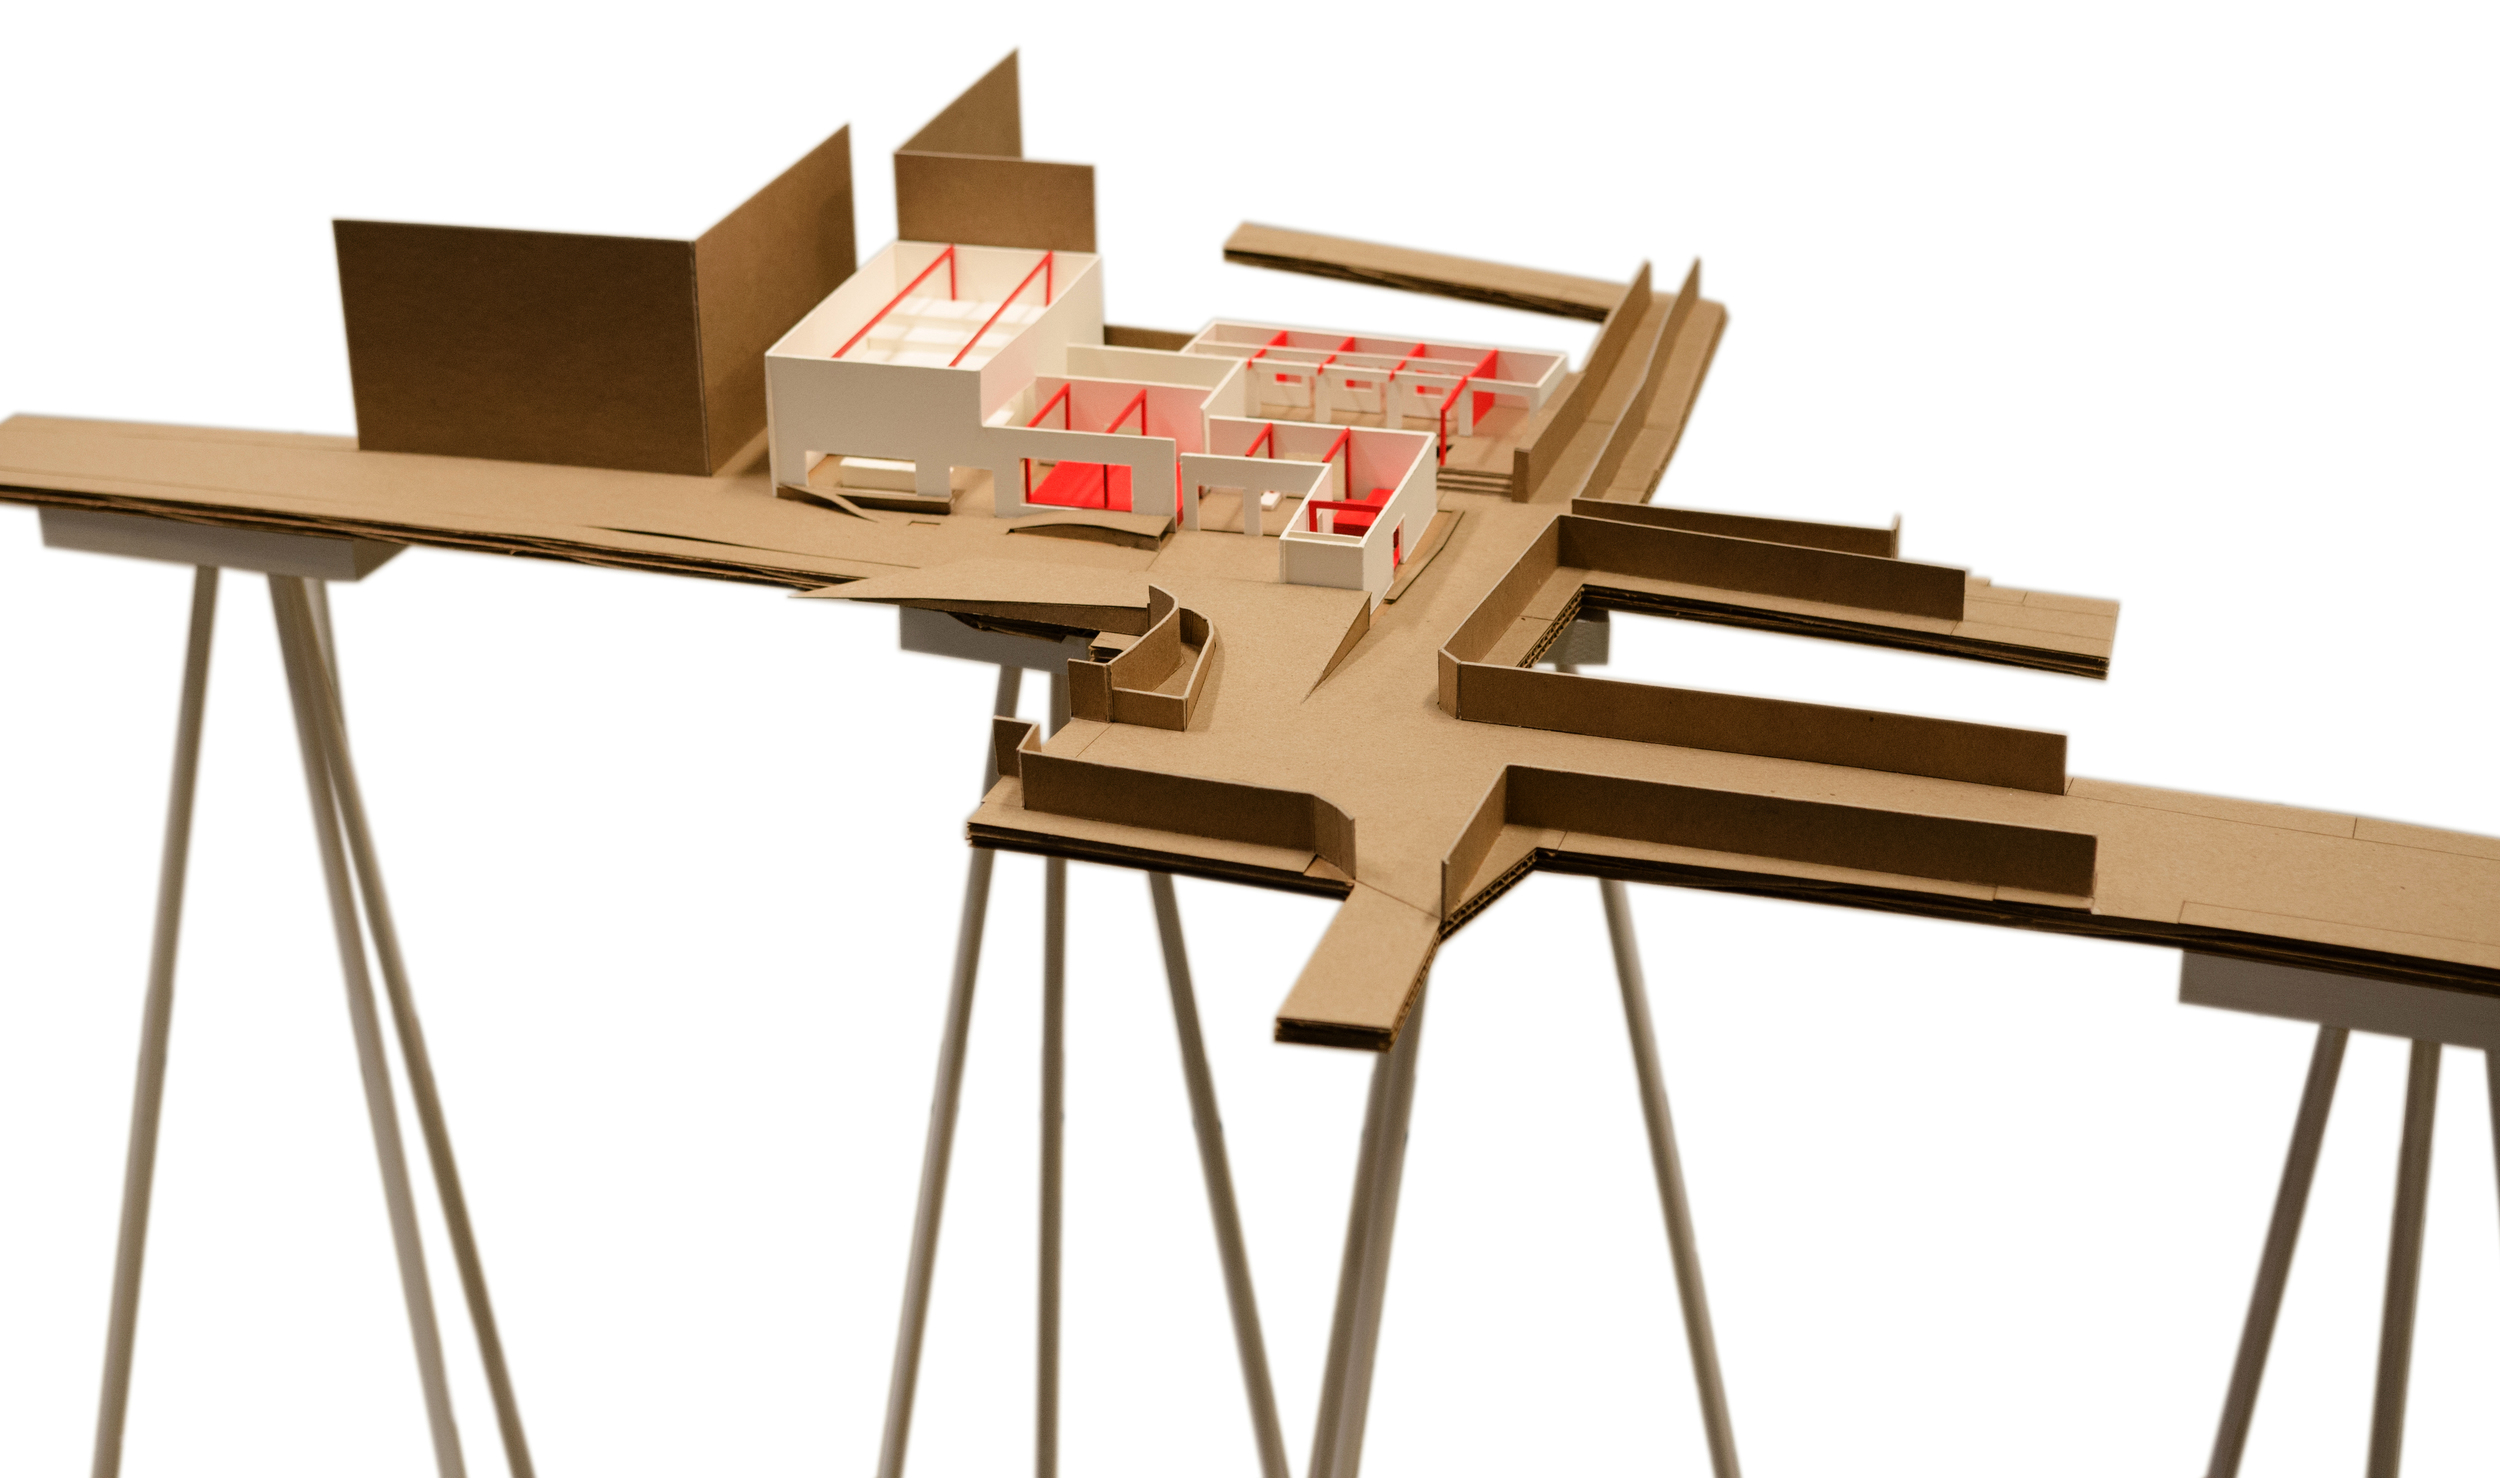 Combined Building - Overall Model